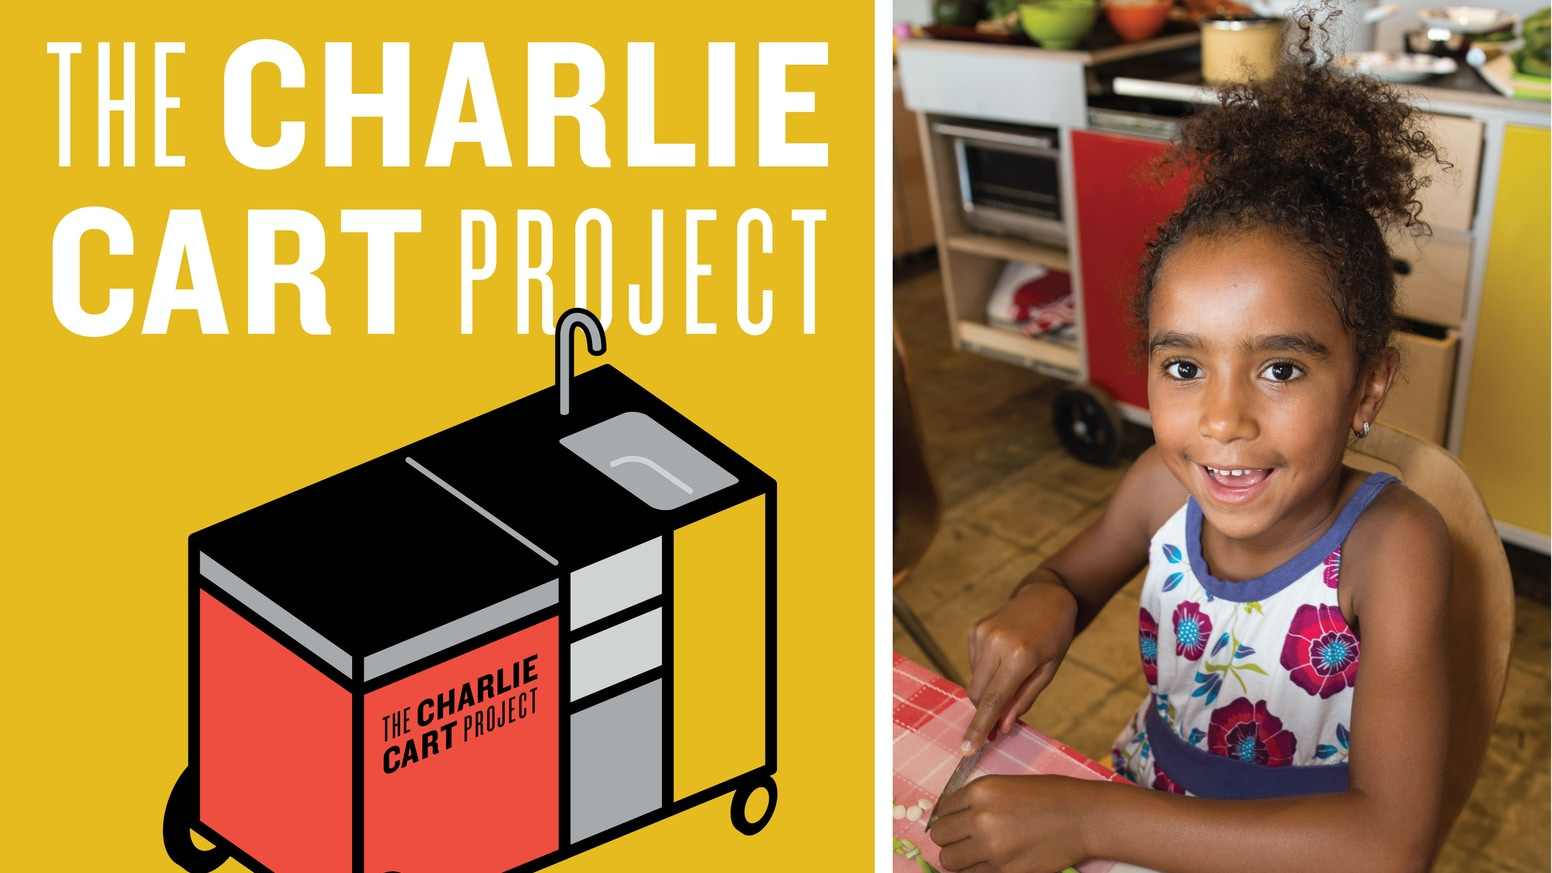 A compact, mobile kitchen with equipment, lessons & training, to get kids cooking in the classroom. Thanks to you, we piloted this program and are now ready to launch nationwide!